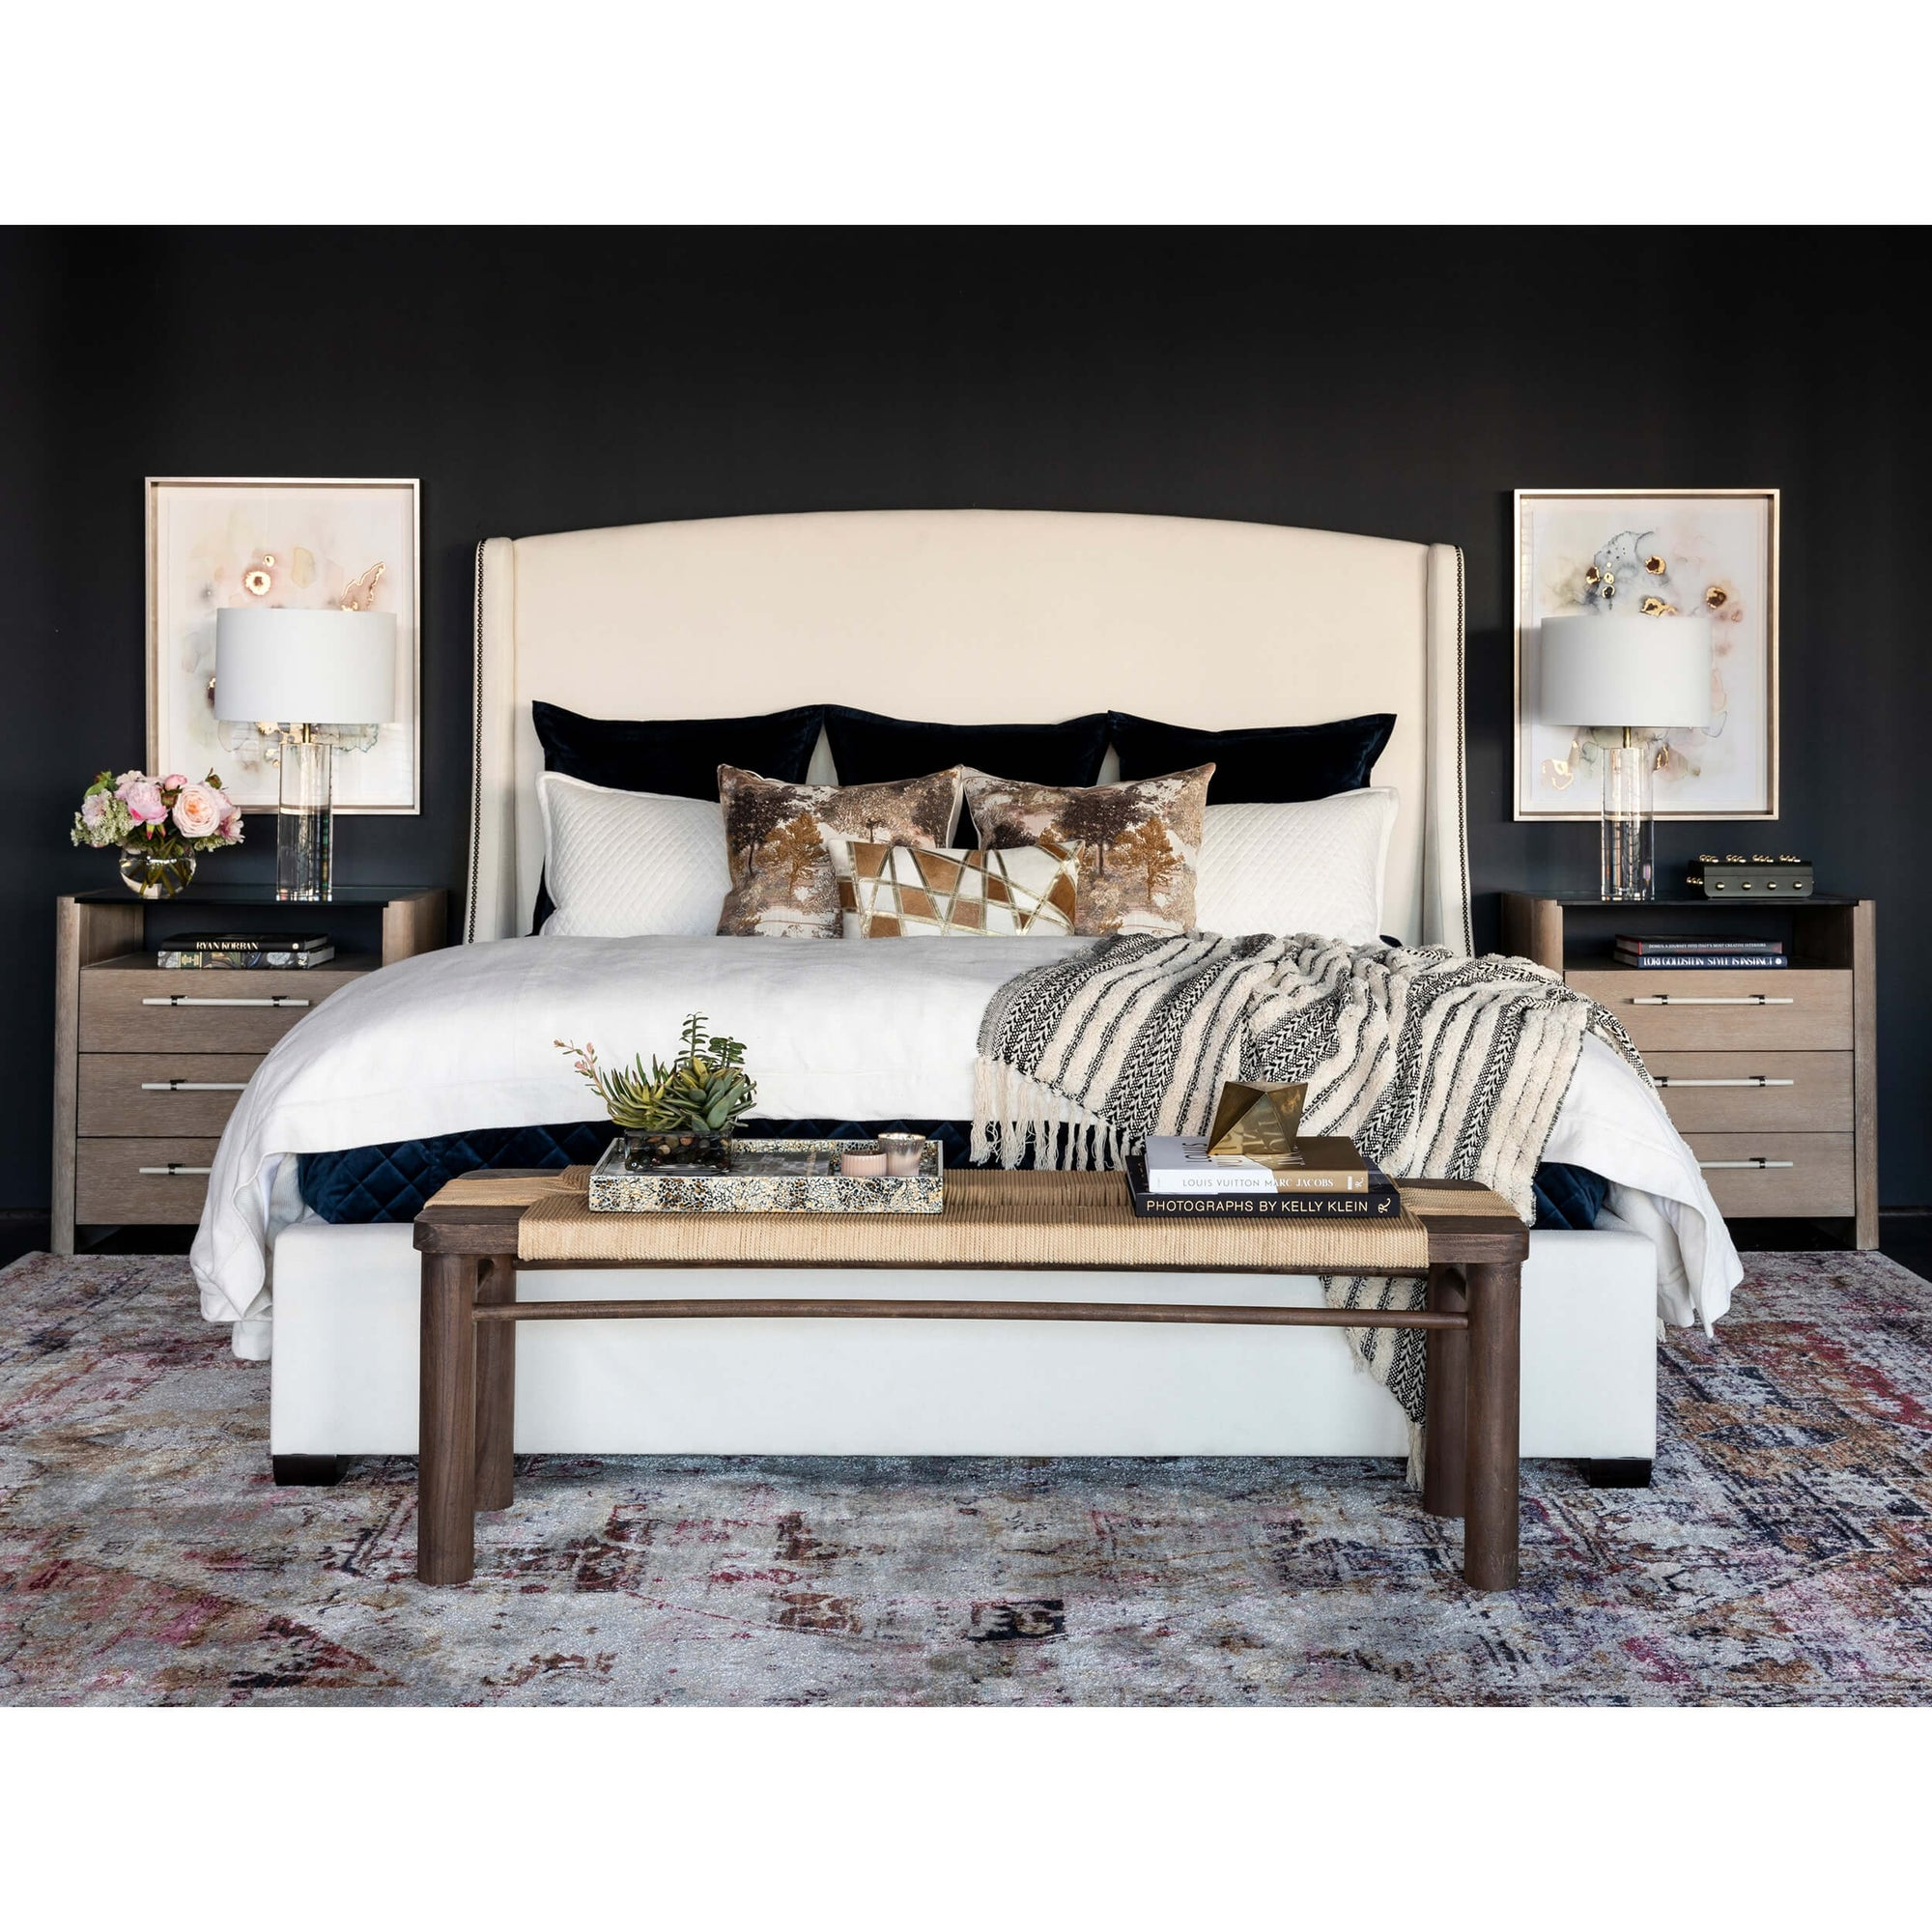 Groovy Cooper Tall Wing Bed High Fashion Home Camellatalisay Diy Chair Ideas Camellatalisaycom